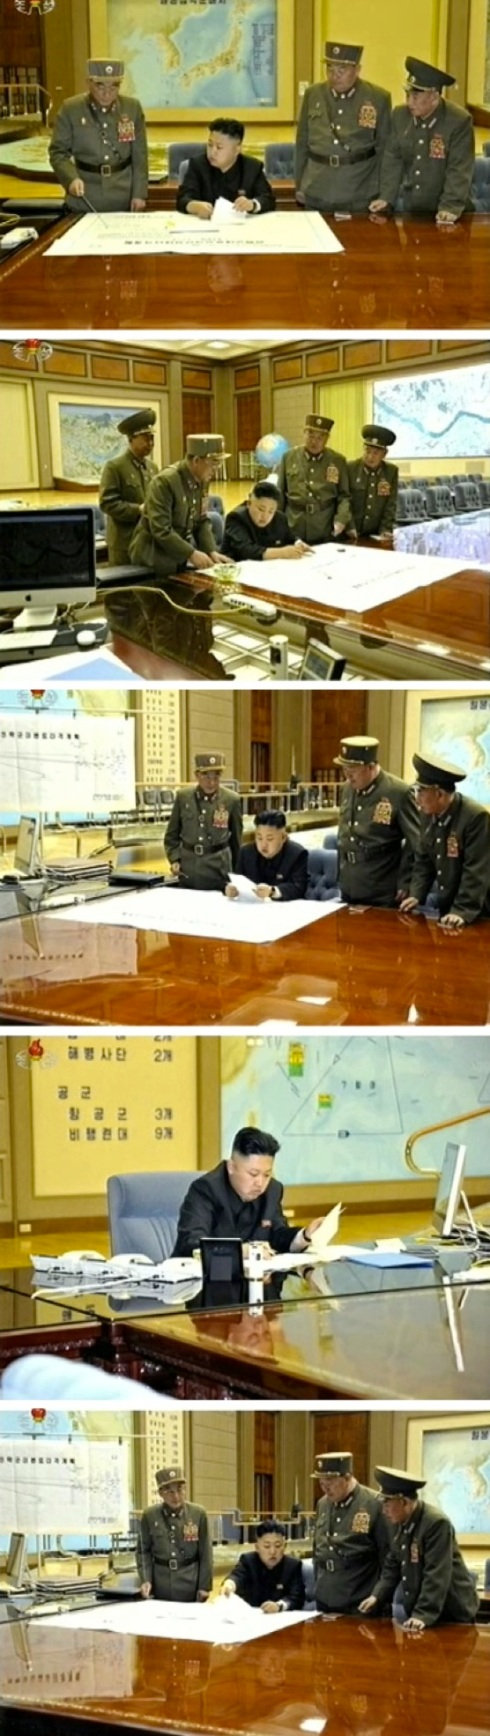 Kim Jong Un participates in an operational planning meeting on 29 March 2013.  Briefing KJU in these images is Lt. Gen. Kim Rak Gyom (L), commander of the KPA Strategic Rocket Force Command (Photos: KCTV screengrabs)